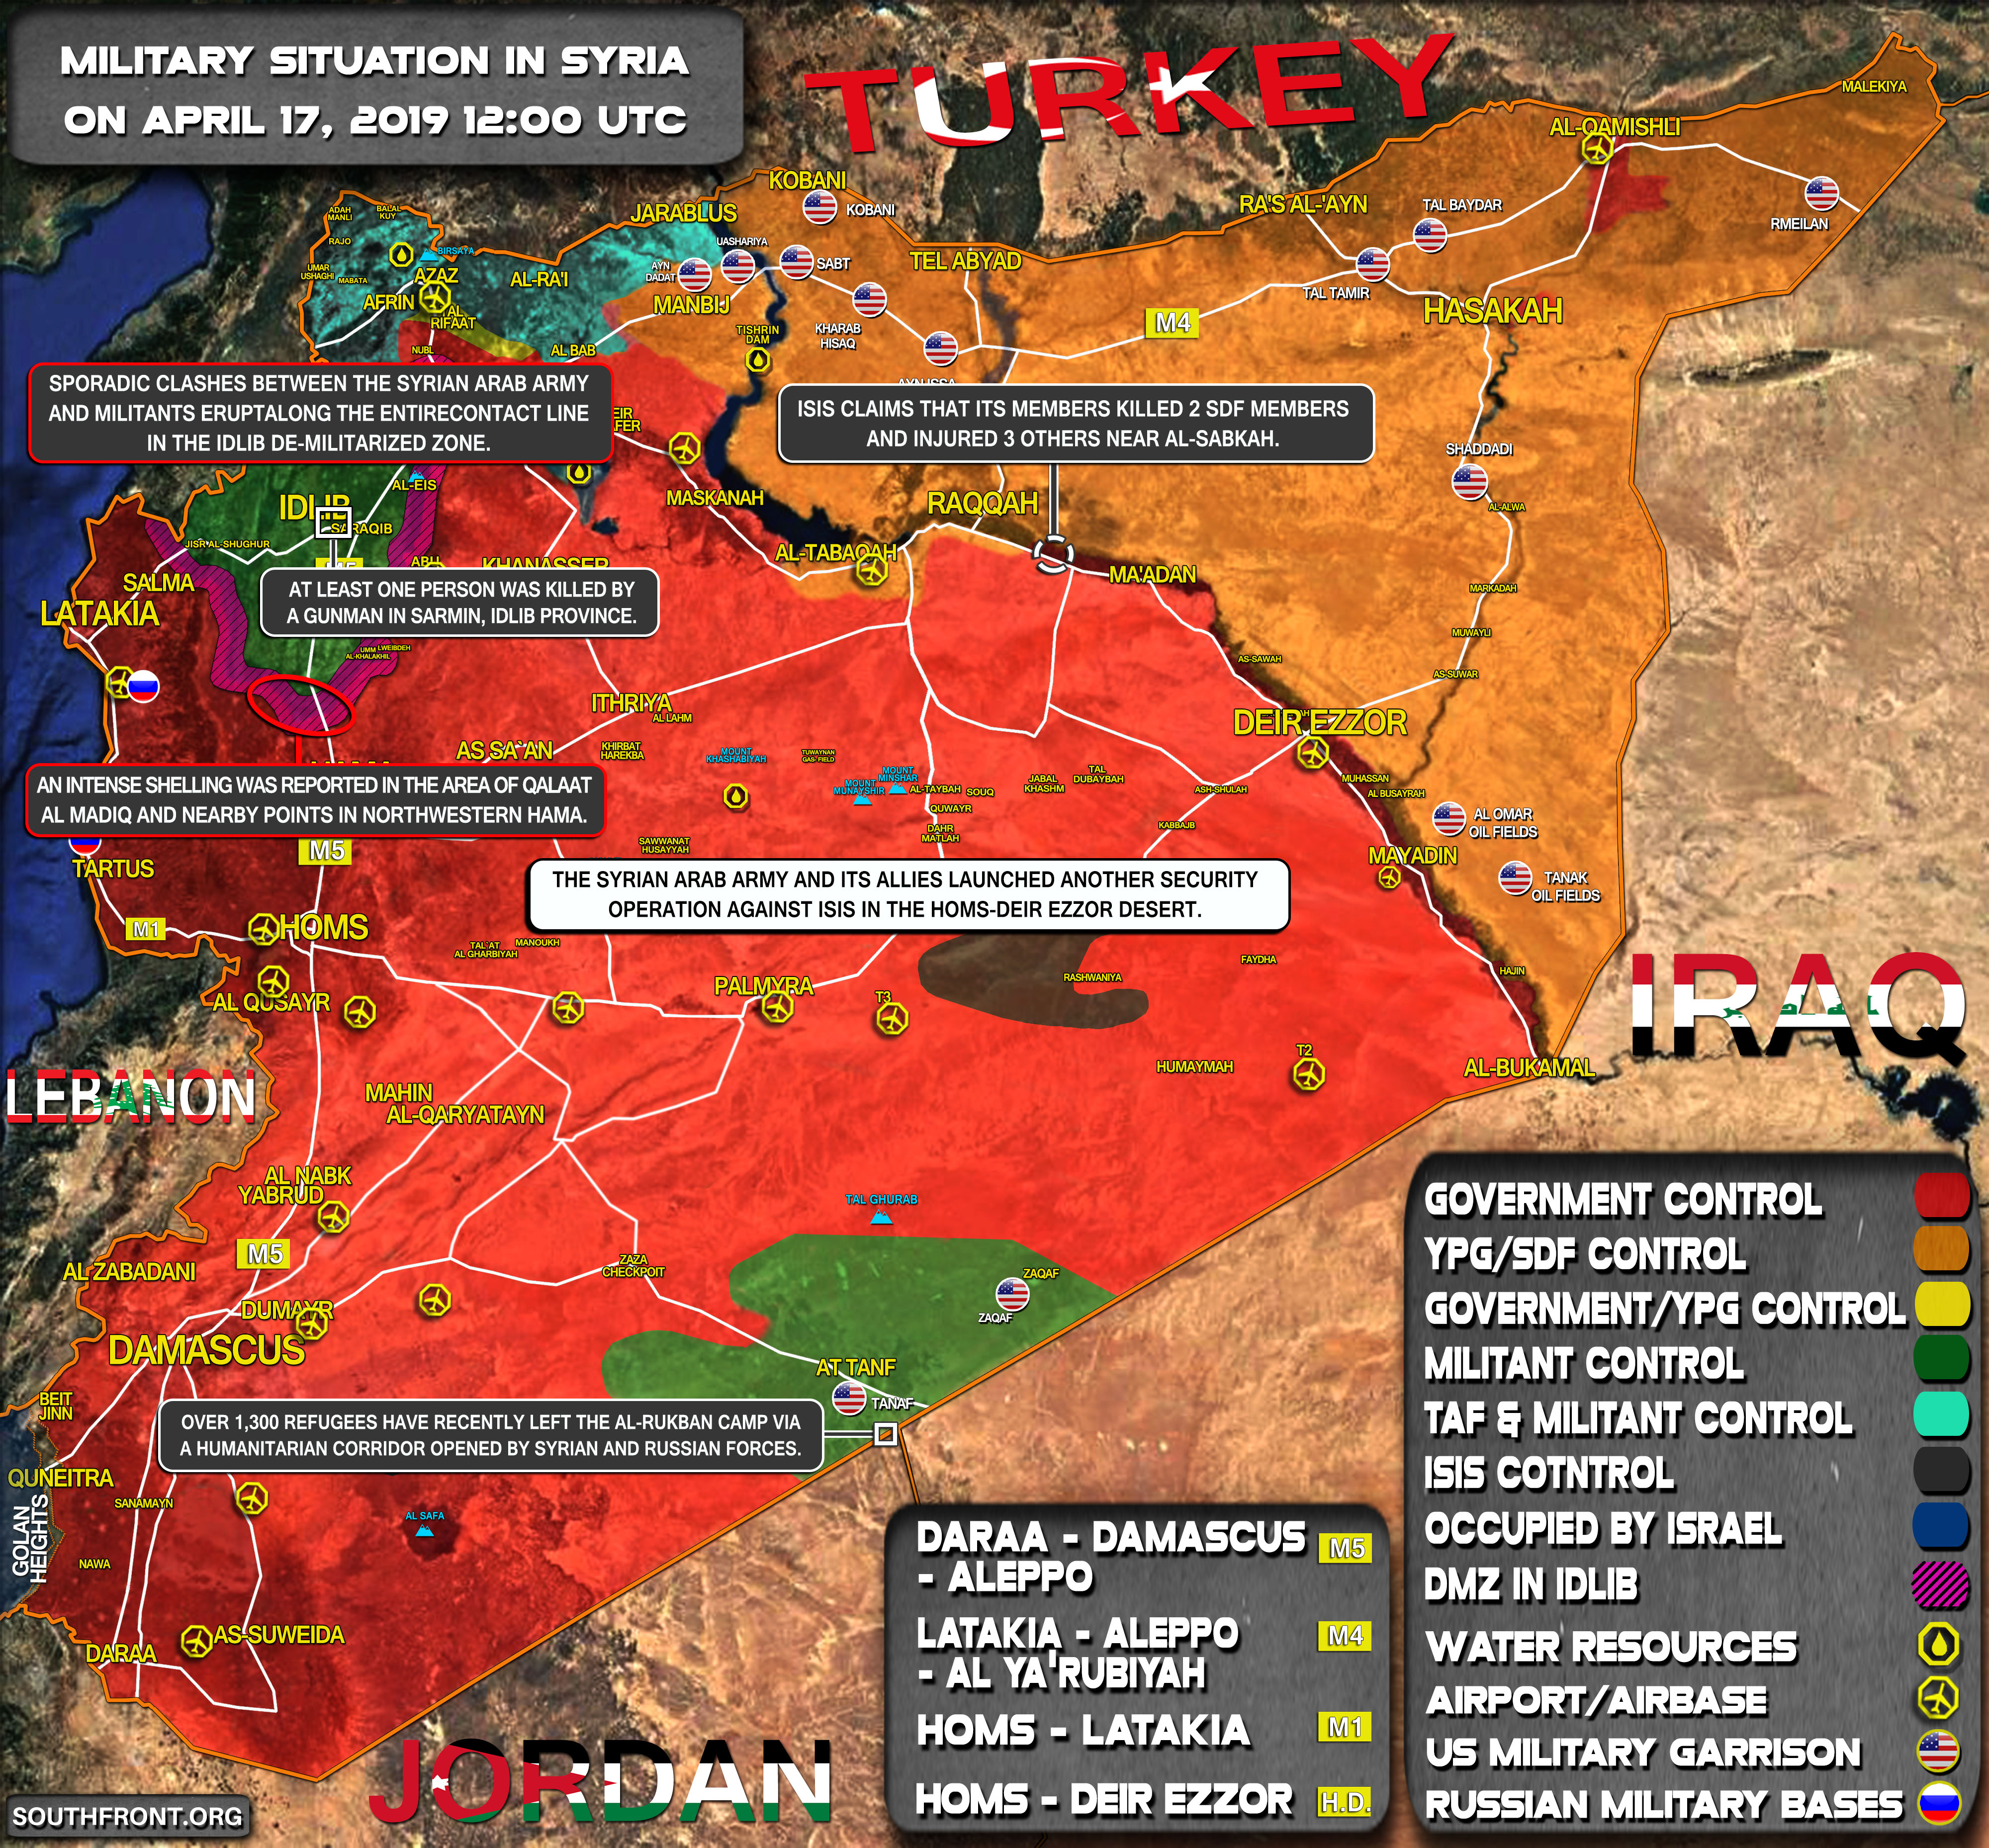 17april_Syria_war_map.jpg